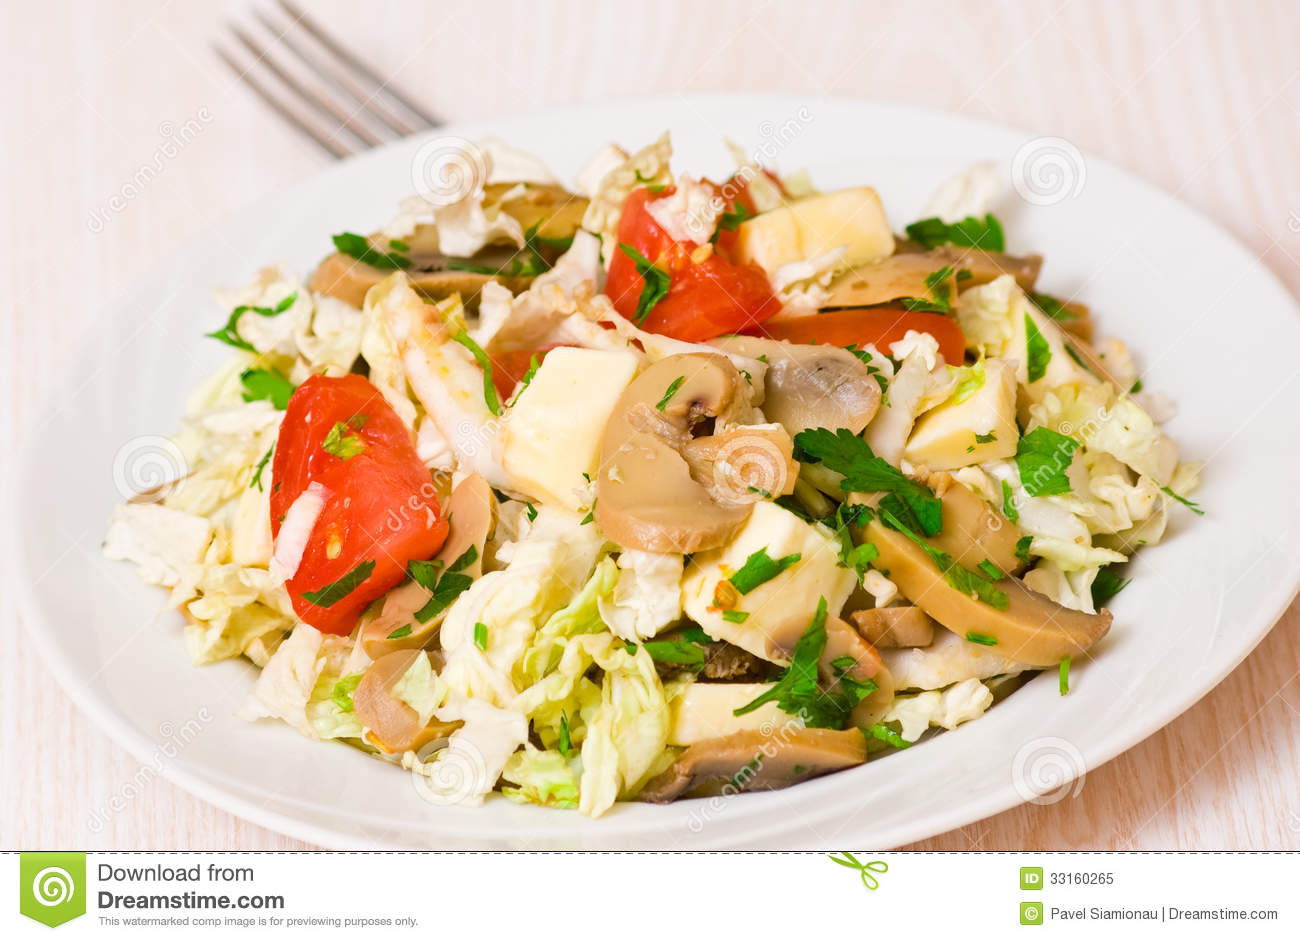 ... Free Stock Photo: Salad with chicken, mushrooms, cheese and vegetables